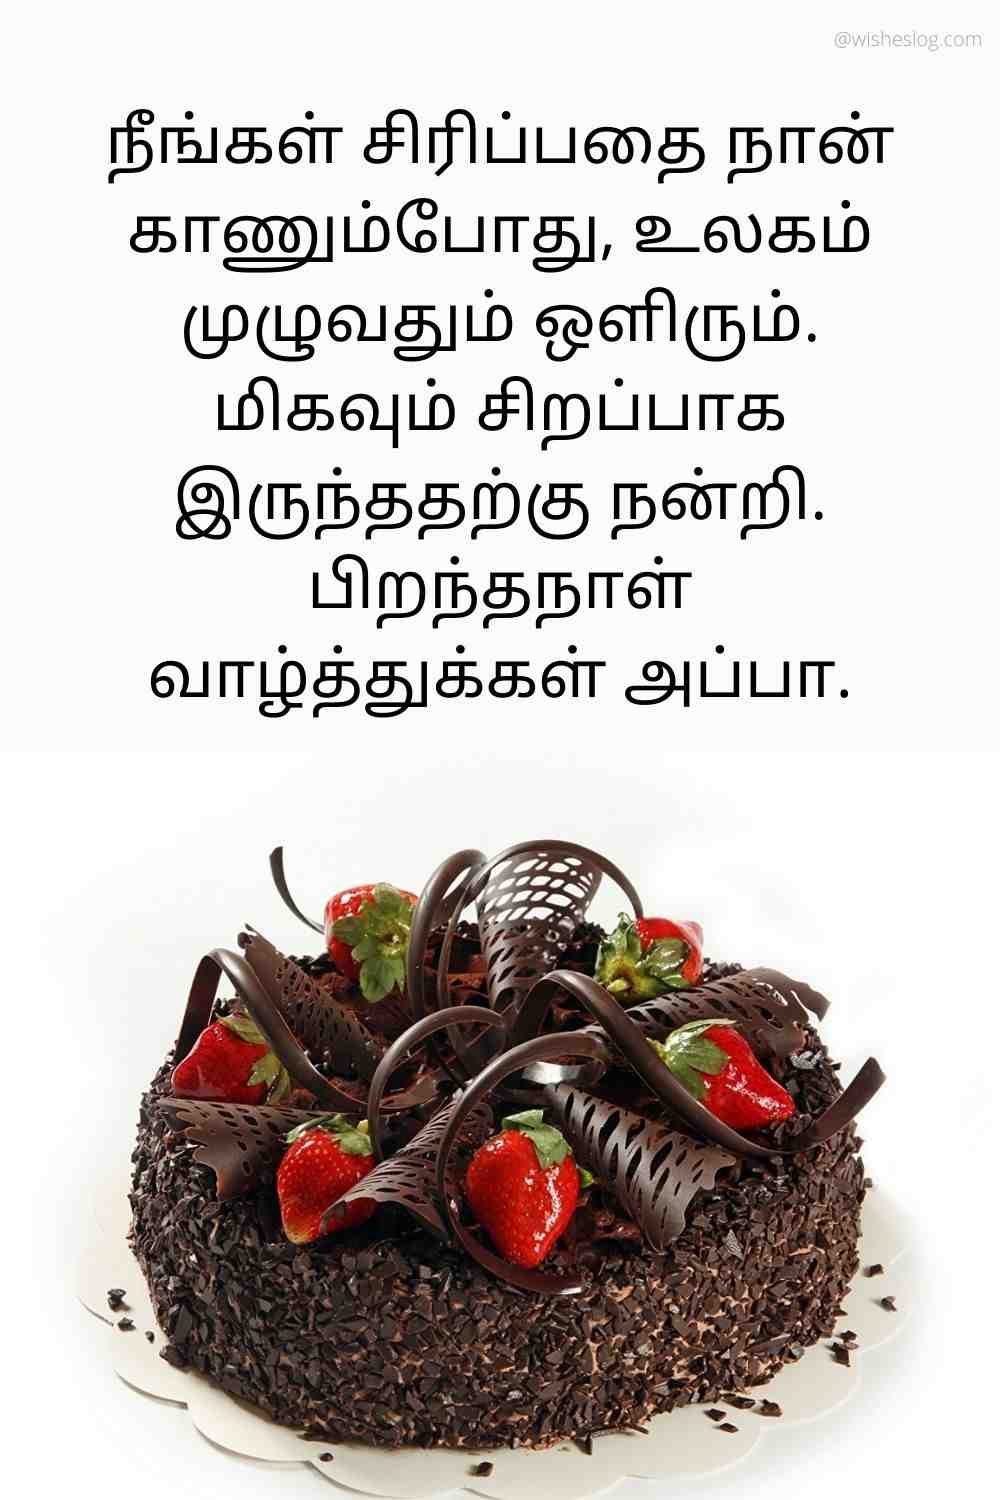 birthday wishes for papa in tamil